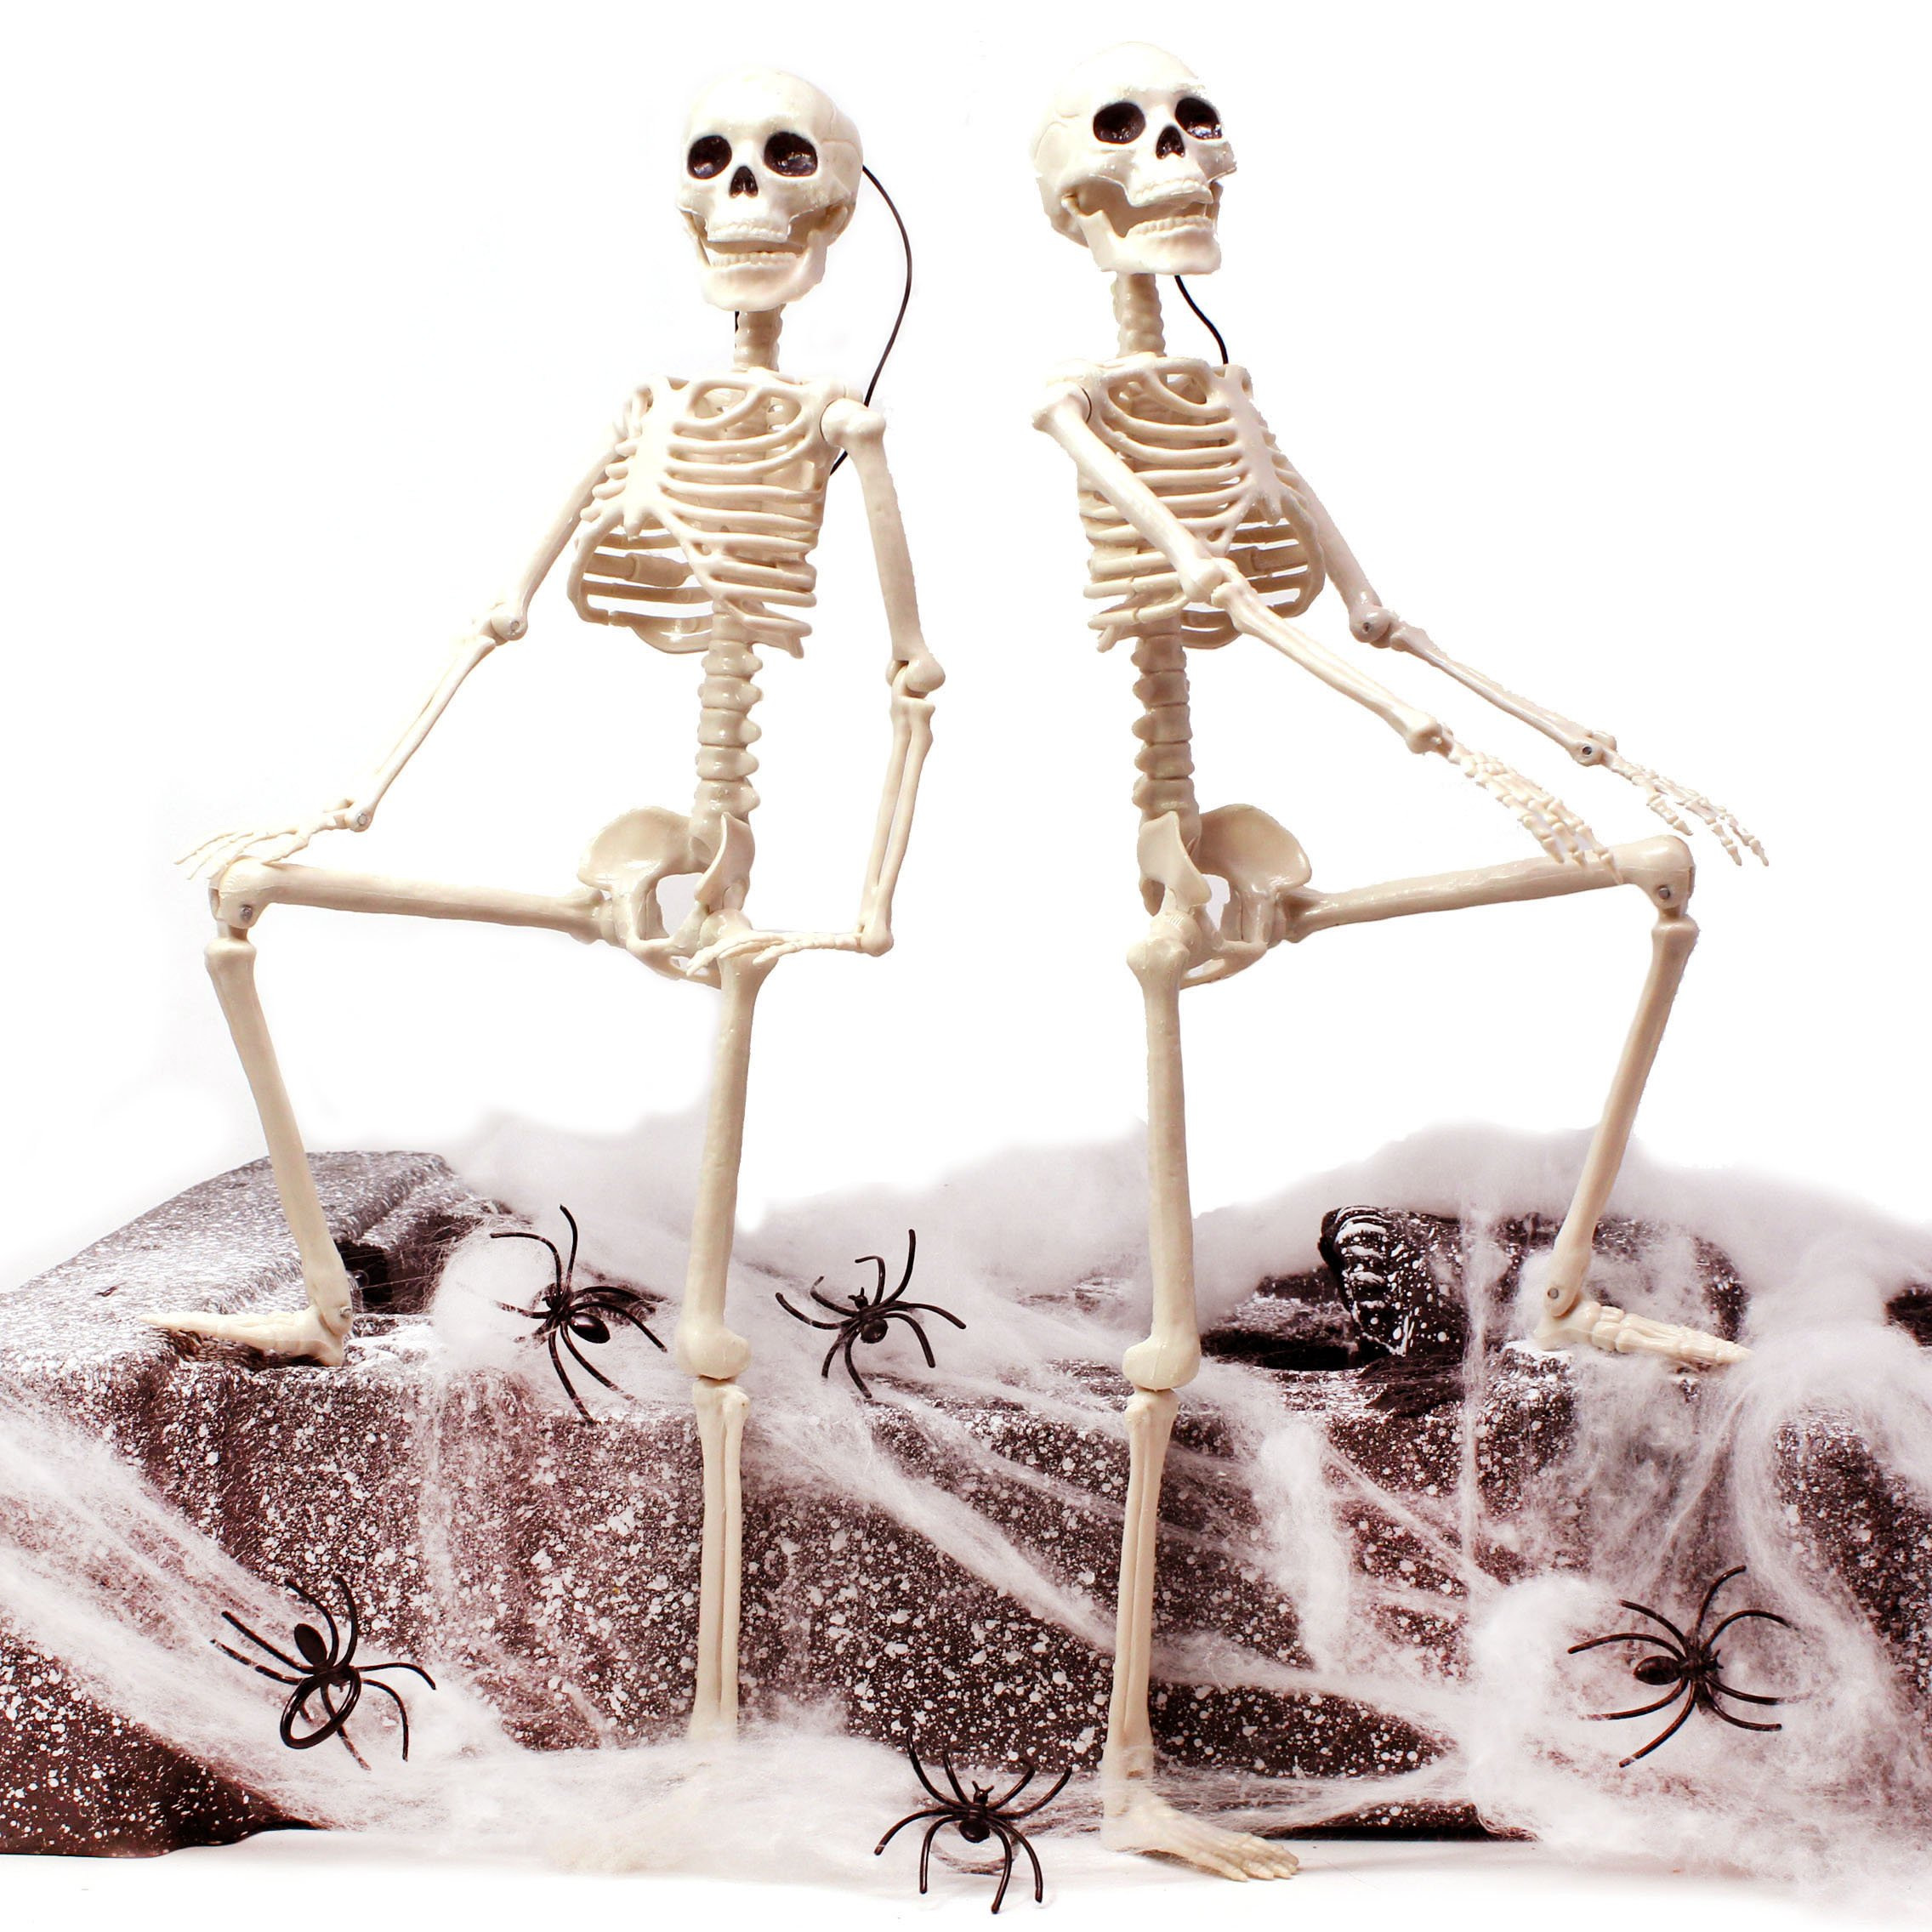 JOYIN 2 Packs 16'' Posable Halloween Skeletons | Full Body Posable Joints Skeletons for Halloween Decoration, Graveyard Decorations, Haunted House Accessories by JOYIN